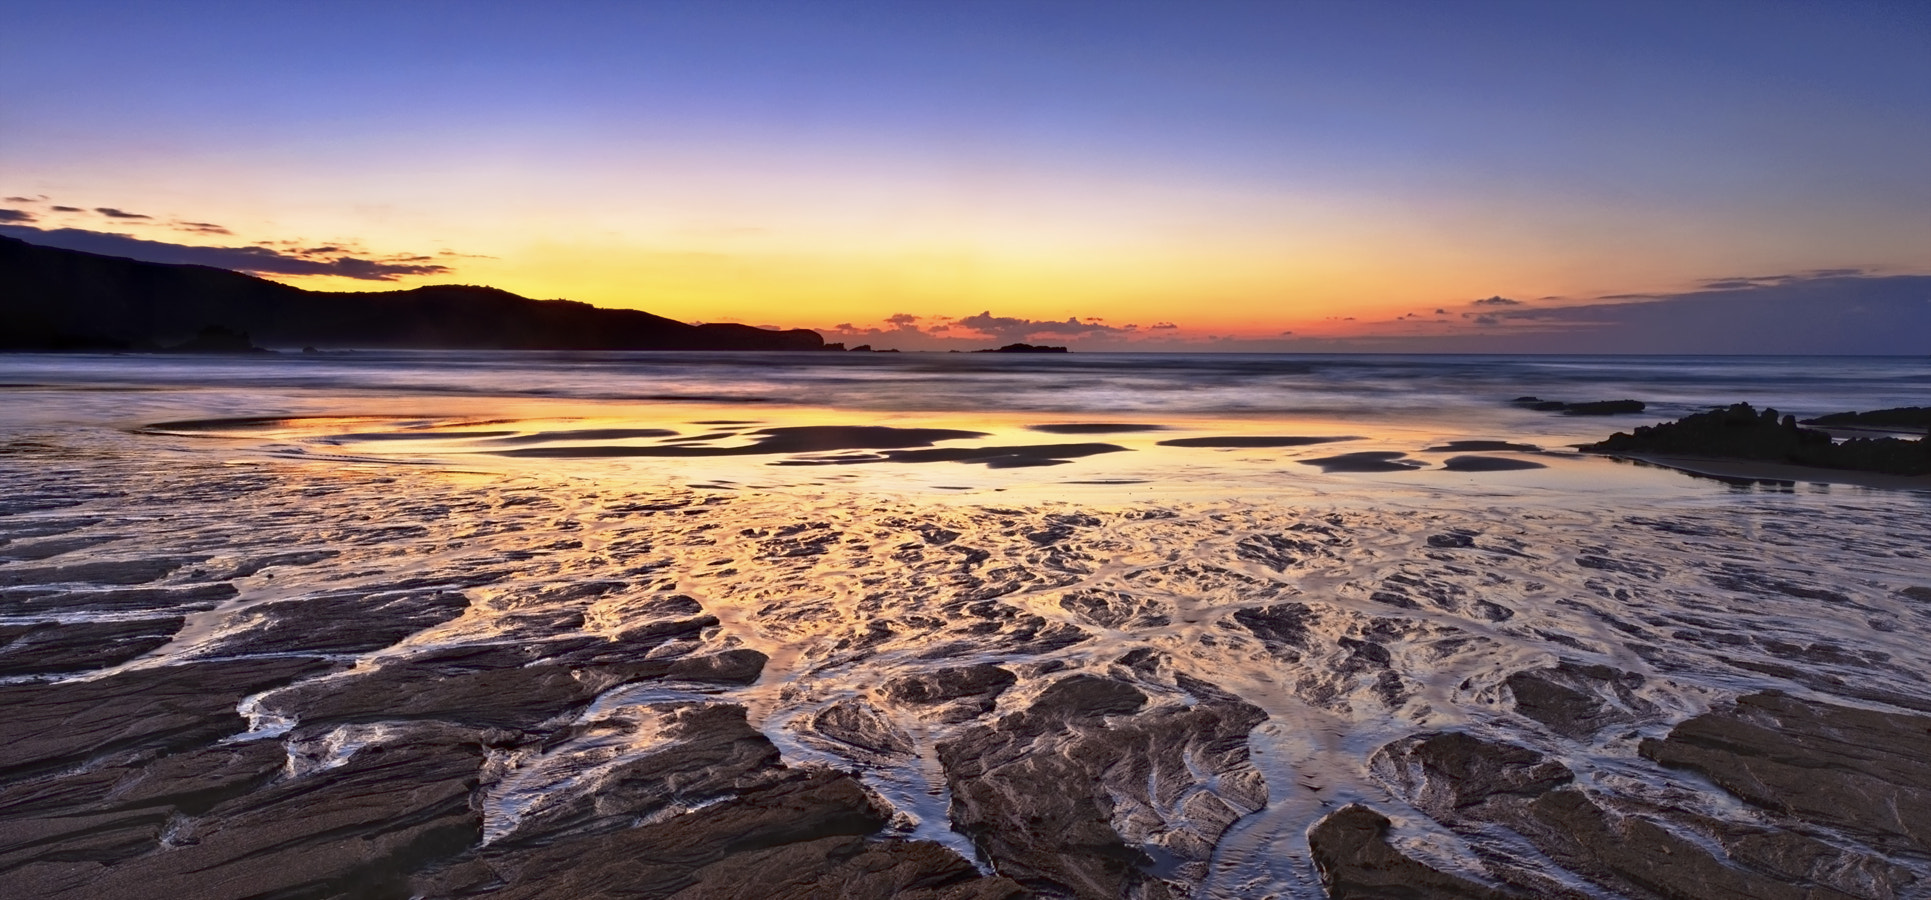 Photograph Dendritic sand patterns at sunset by Saghani  on 500px